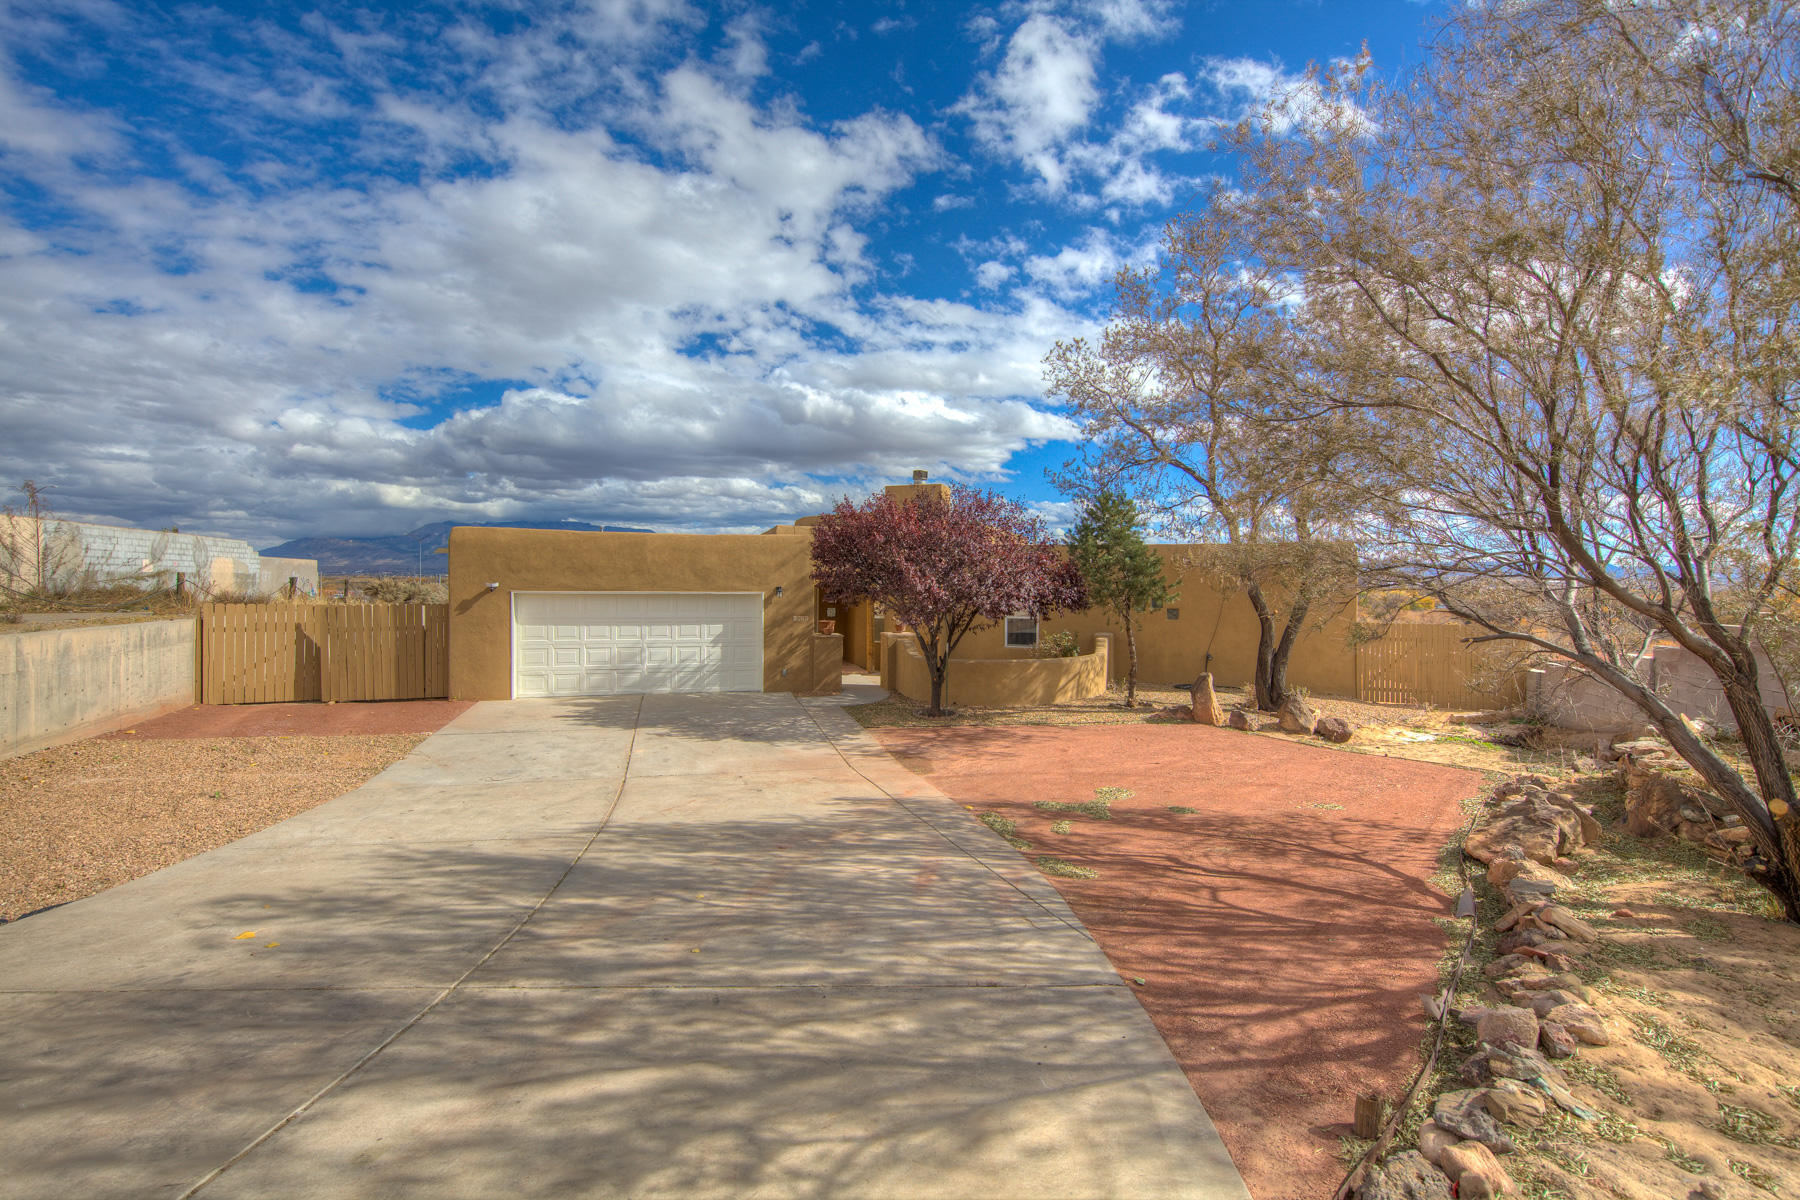 Stunning Views of Rio Grande and Sandia mountains. Enjoy this phenomenal property. Complete remodel with beautiful finishes. Master suite has his her baths. Open kitchen with sweeping views. Lots of storage and secondary rooms are good sized. This home is a must see.